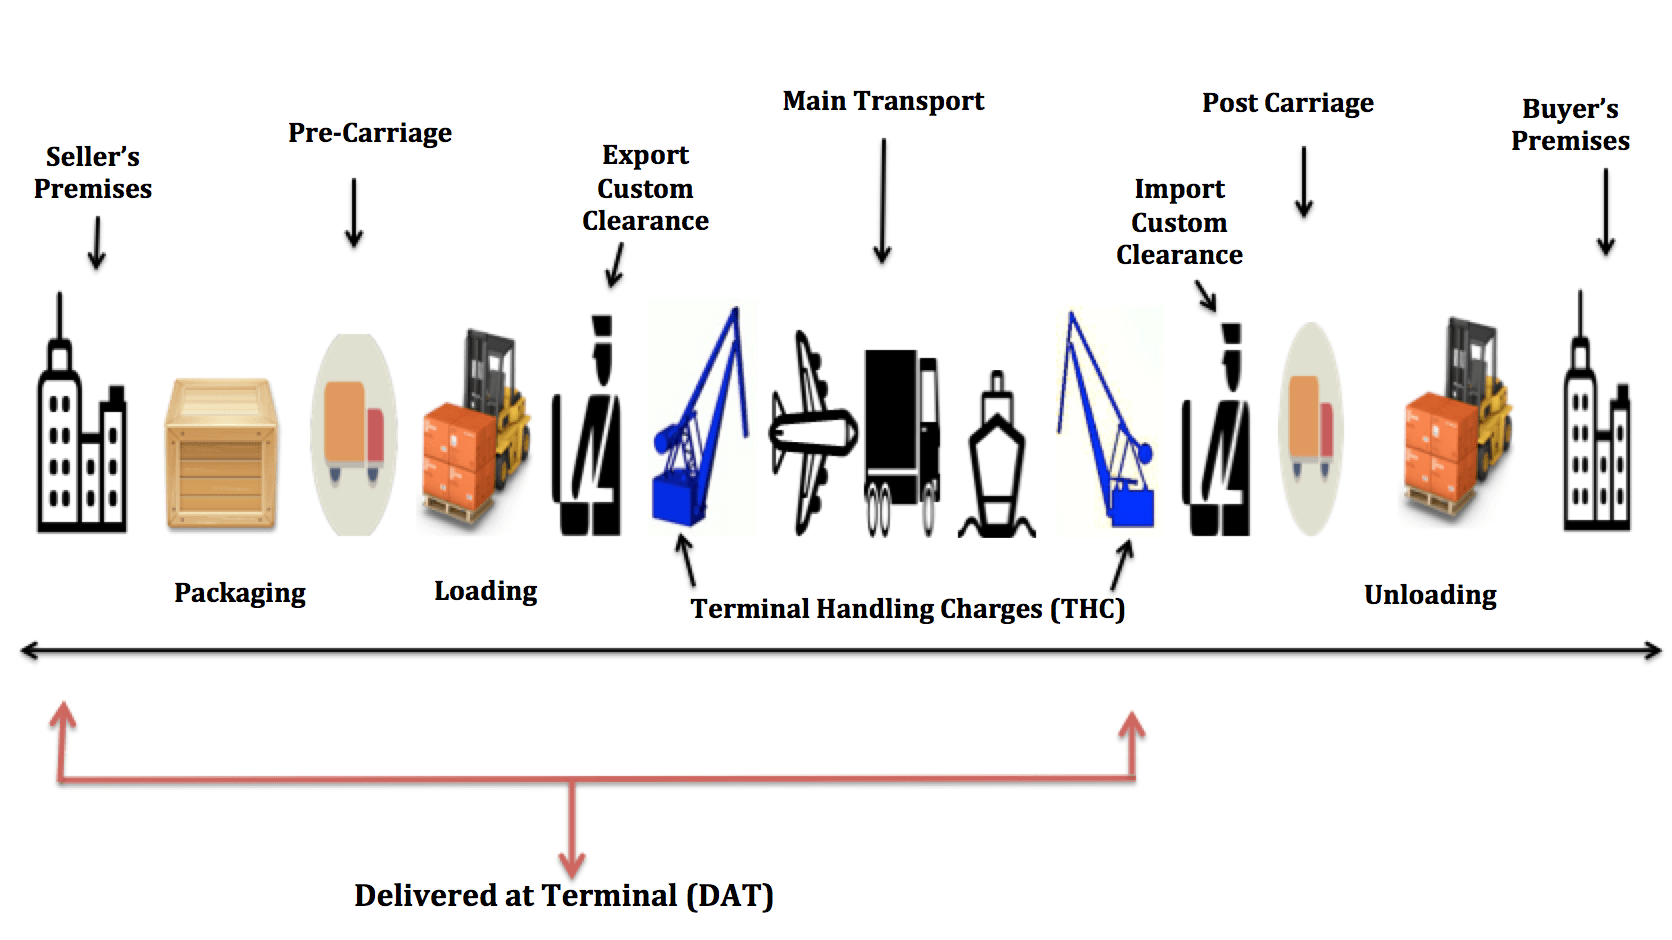 Delivered at Terminal